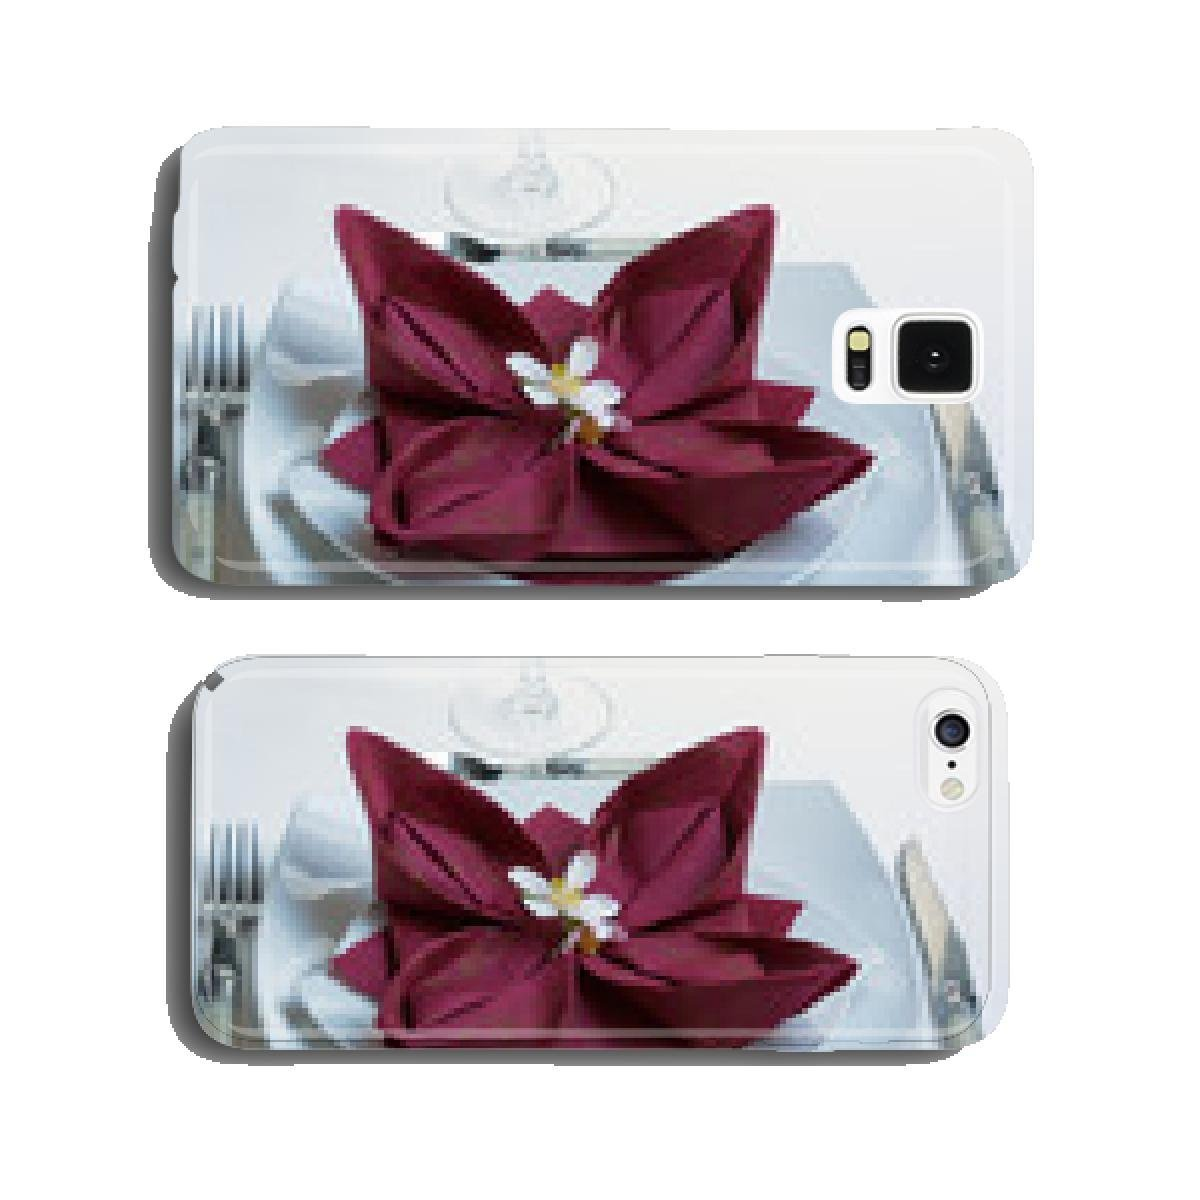 Napkin Folding Lotus Flower On Plate Cell Phone Cover Amazon